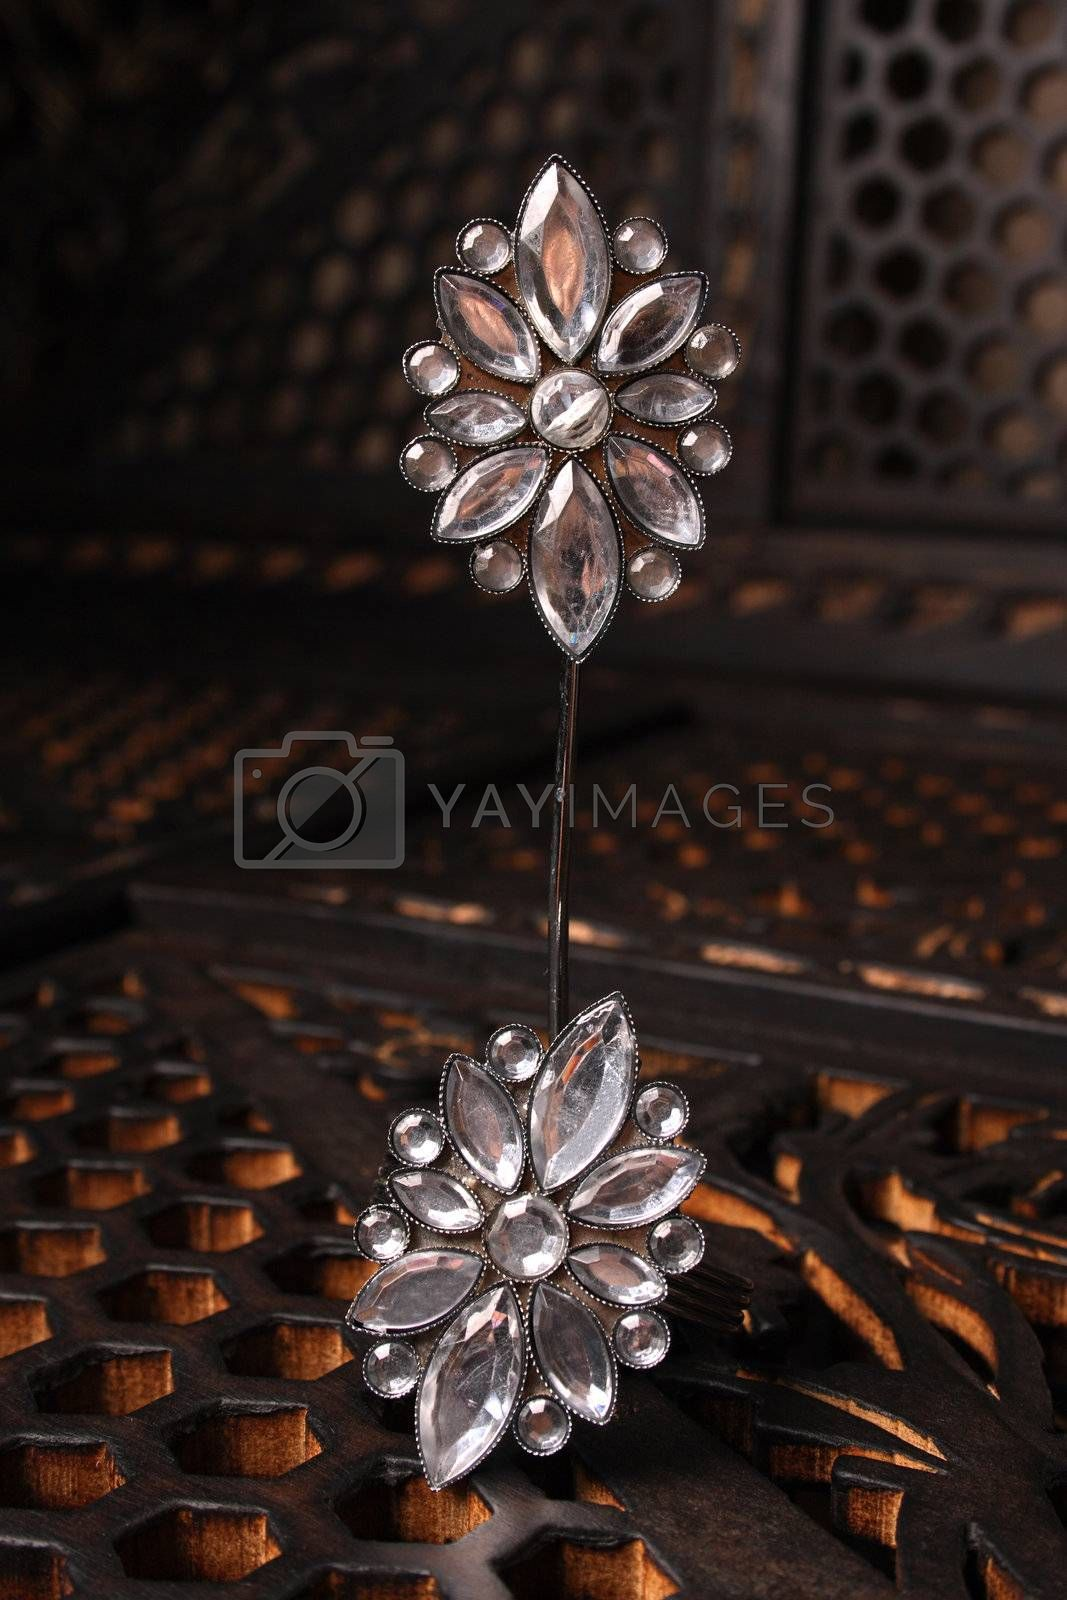 Name Place Holder with glass shaped flowers